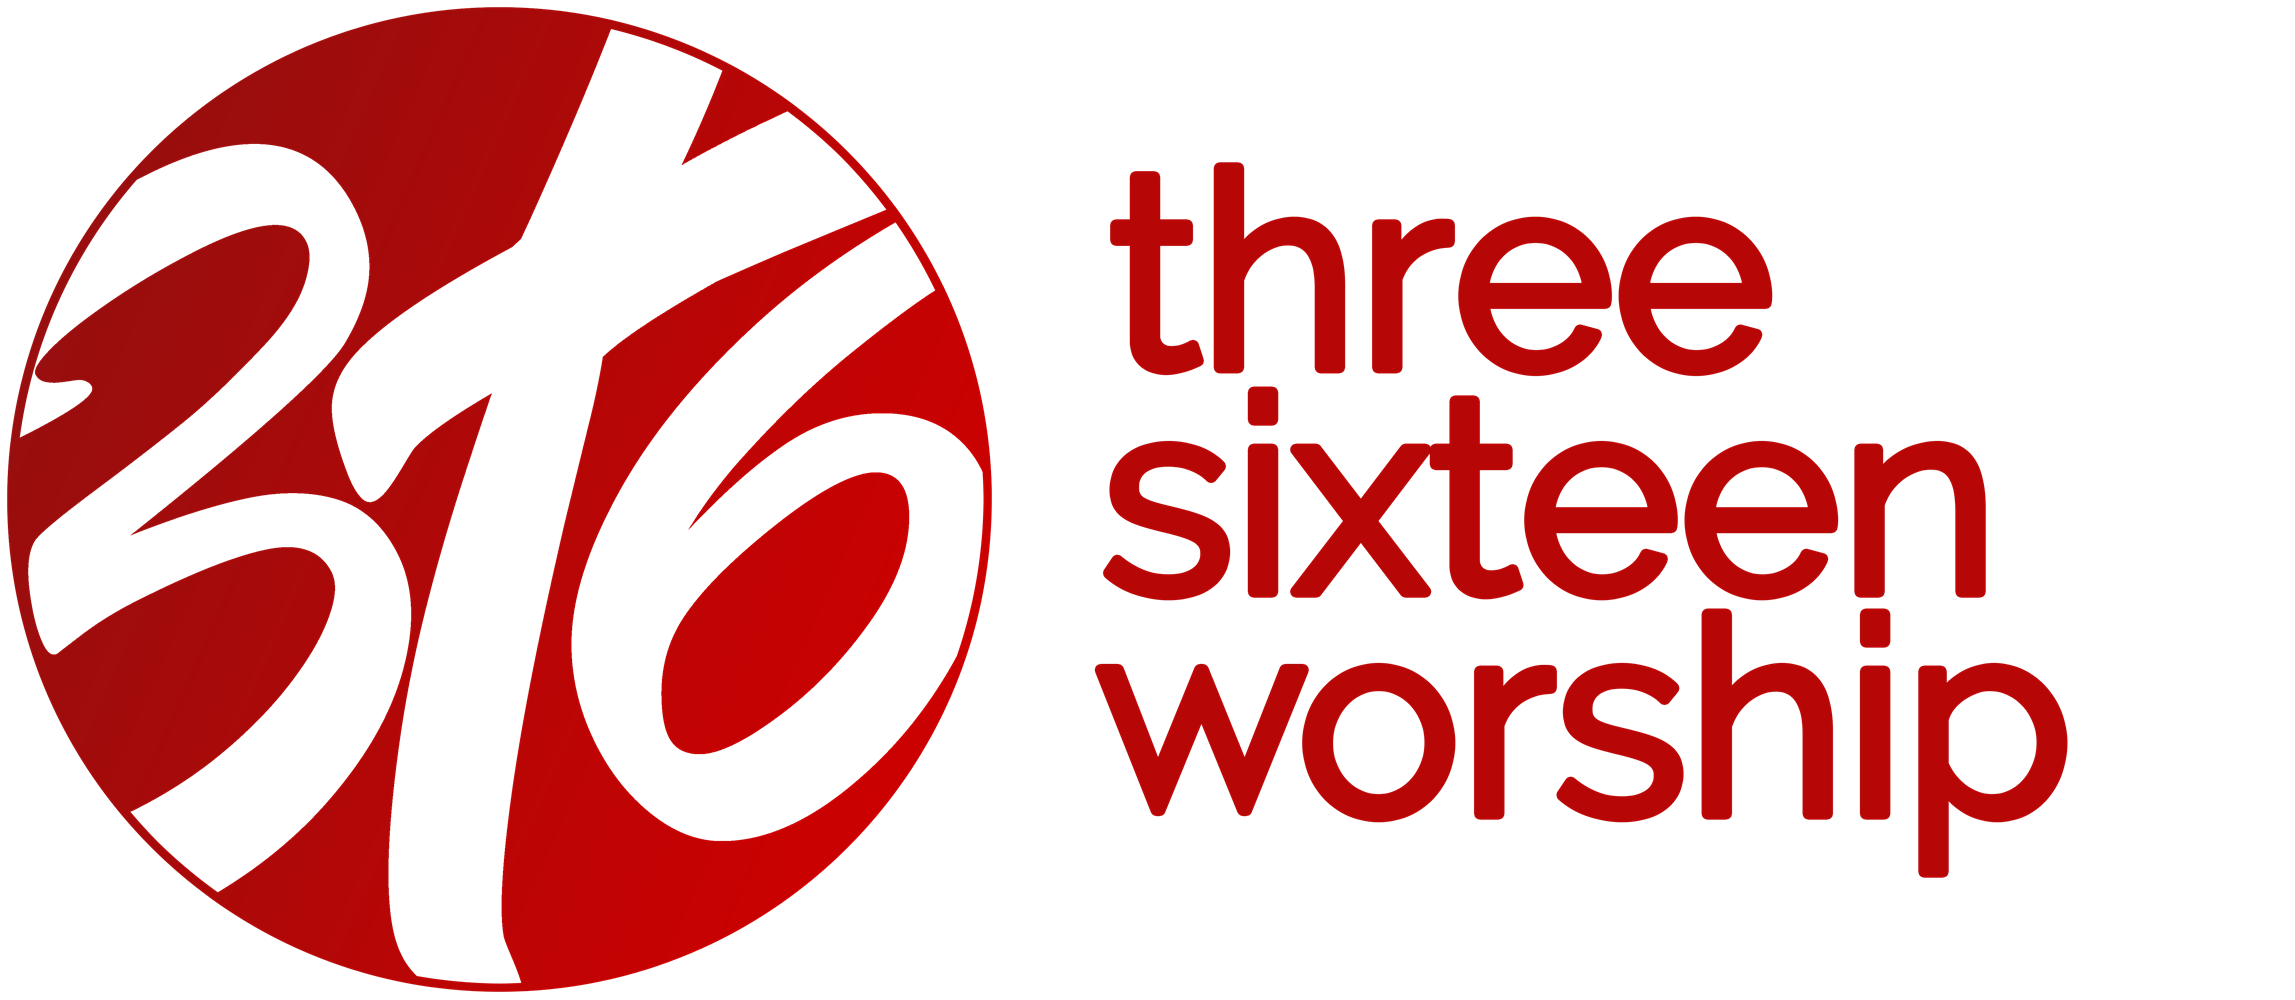 three-sixteen-logo-1